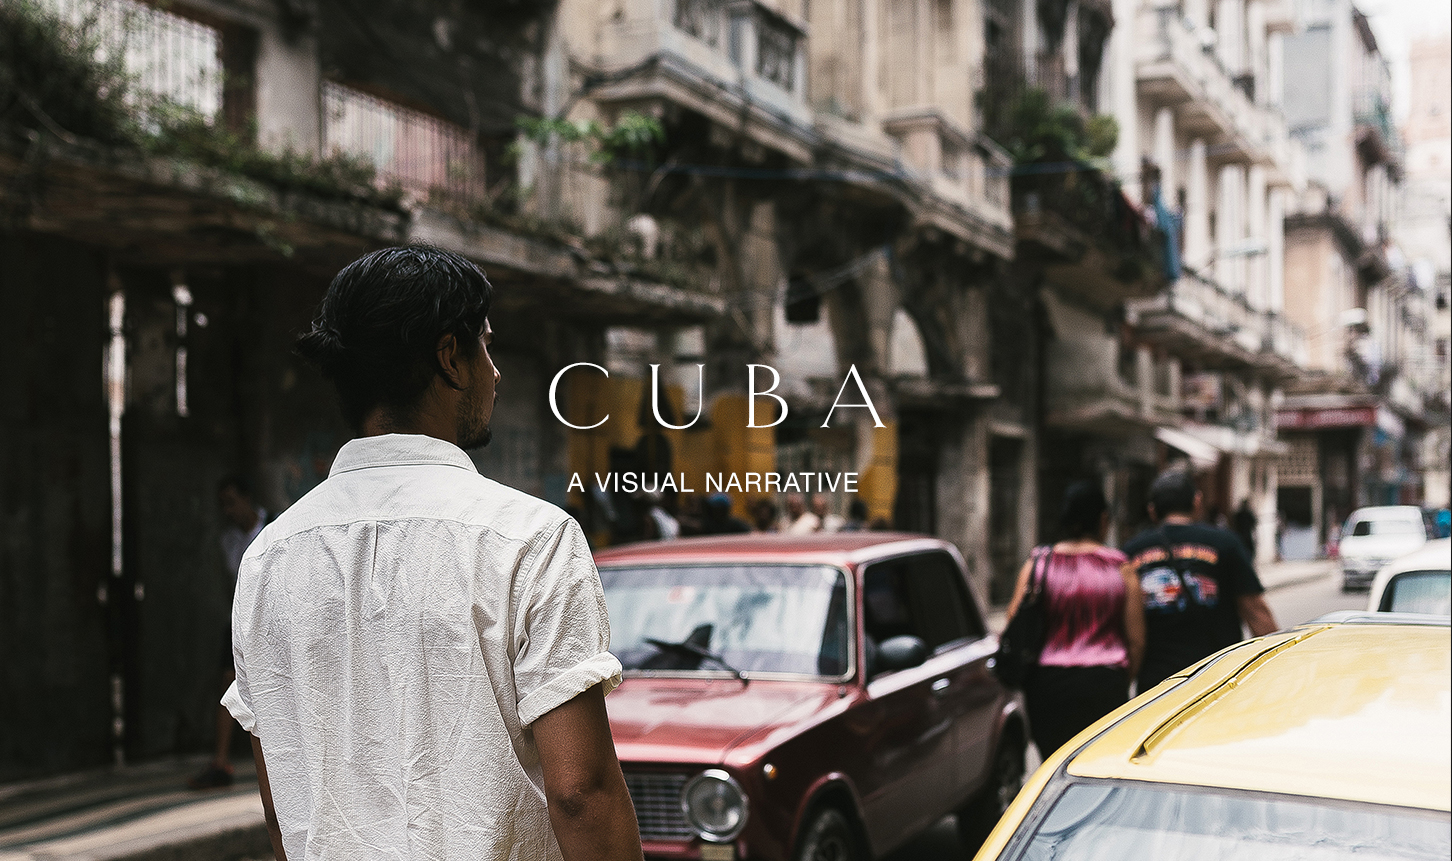 ProjectsMarquee-image-Cuba-New-type-size---final.jpg